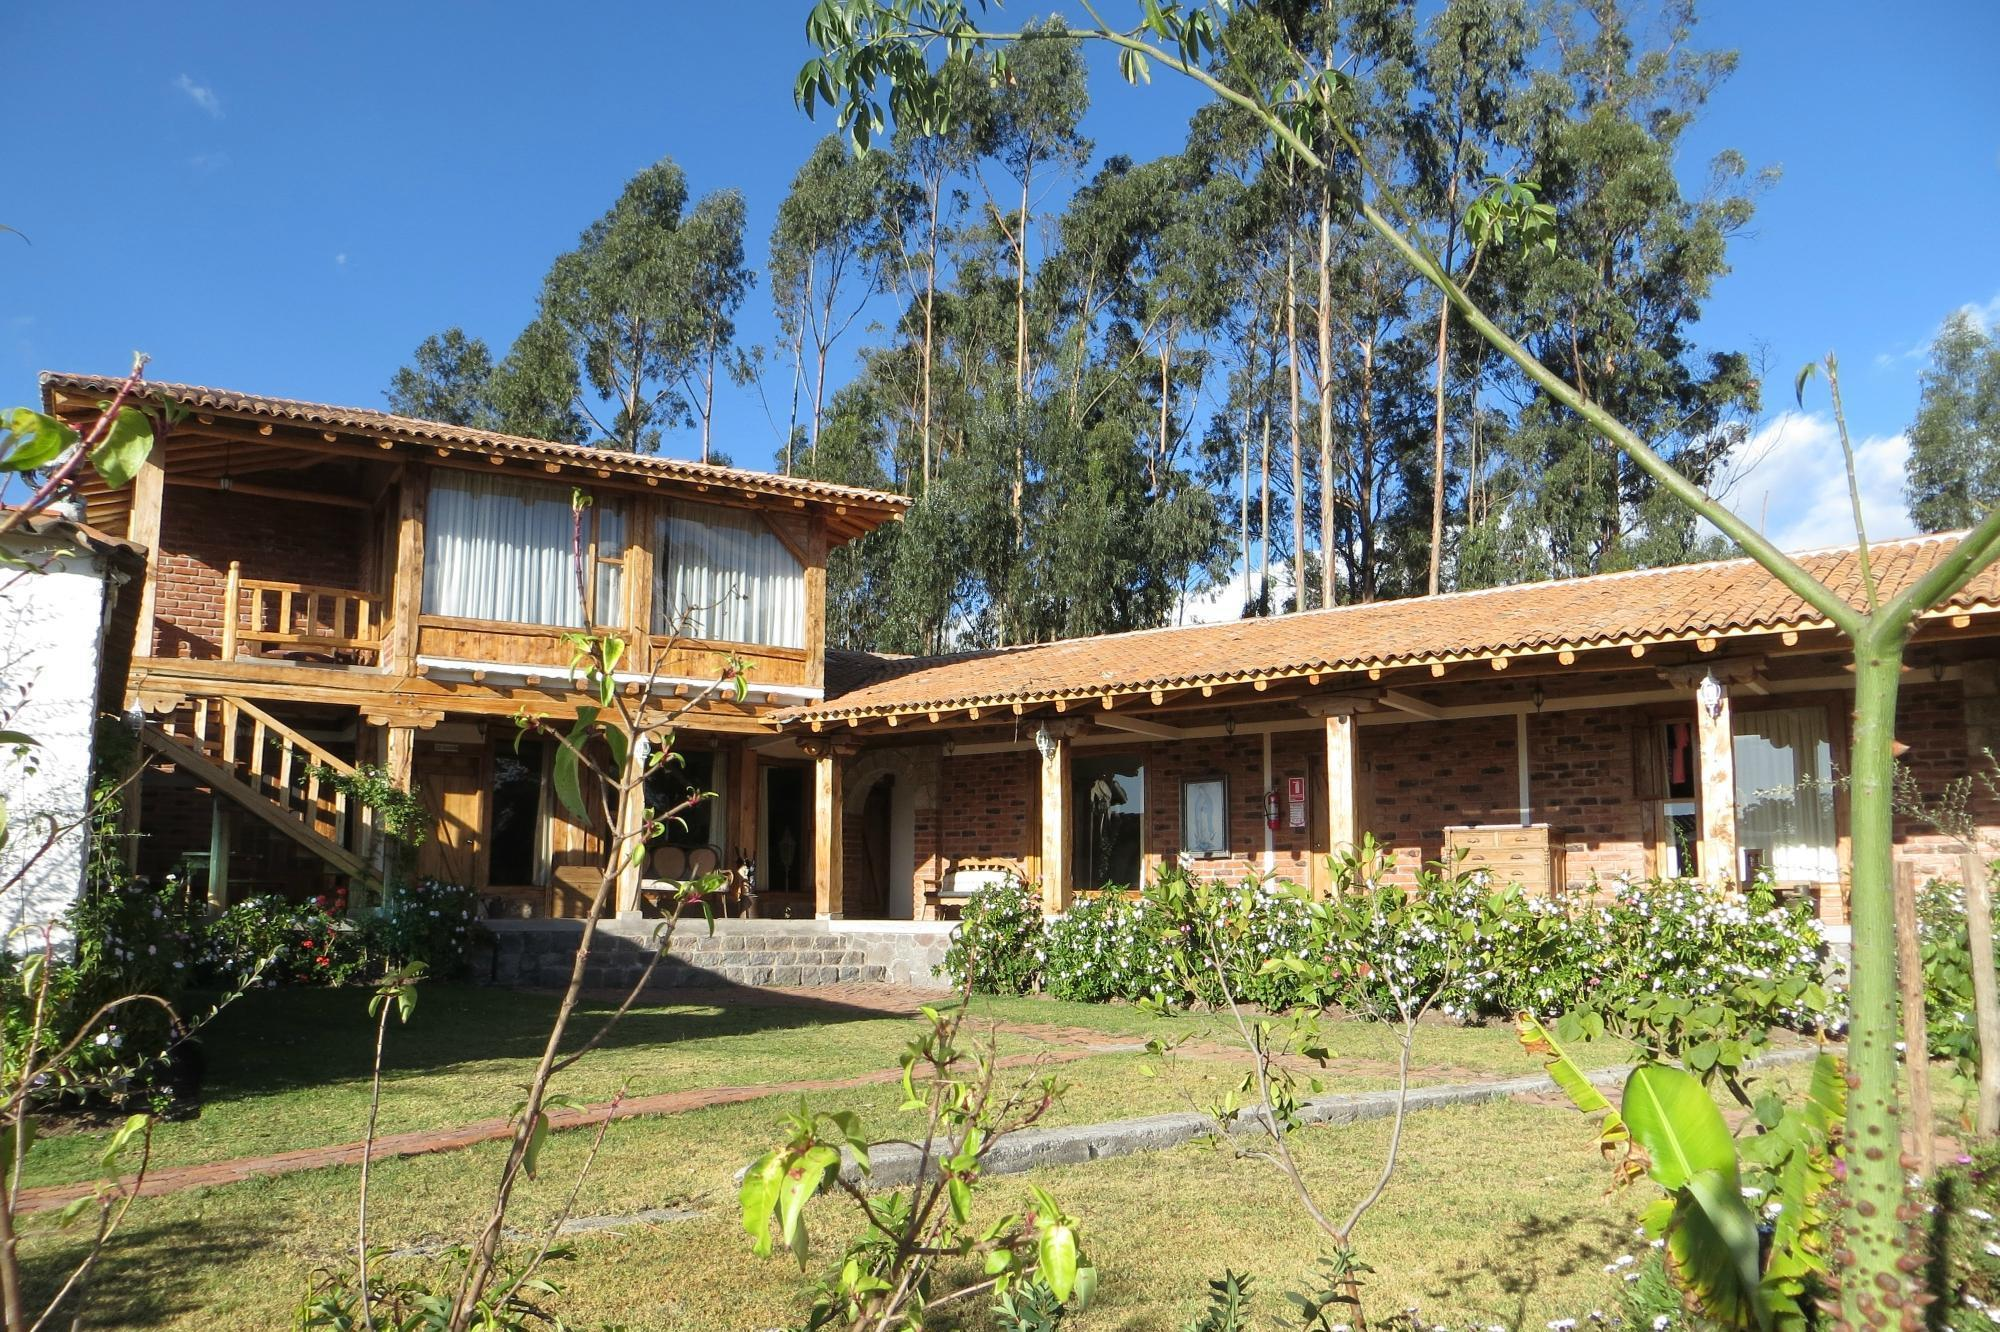 """Hotel Casa de Hacienda La Jimenita in Ecuador is careful to track energy use and educates guests on their practices either before or during their stay. They also have a set heating temperature to save energy, use window overhangs to keep the building cool and donate or reuse leftover materials among other things. You can find out more on their <a href=""""http://hotelcasadehaciendaquito.com/"""" target=""""_blank"""">website</a>."""